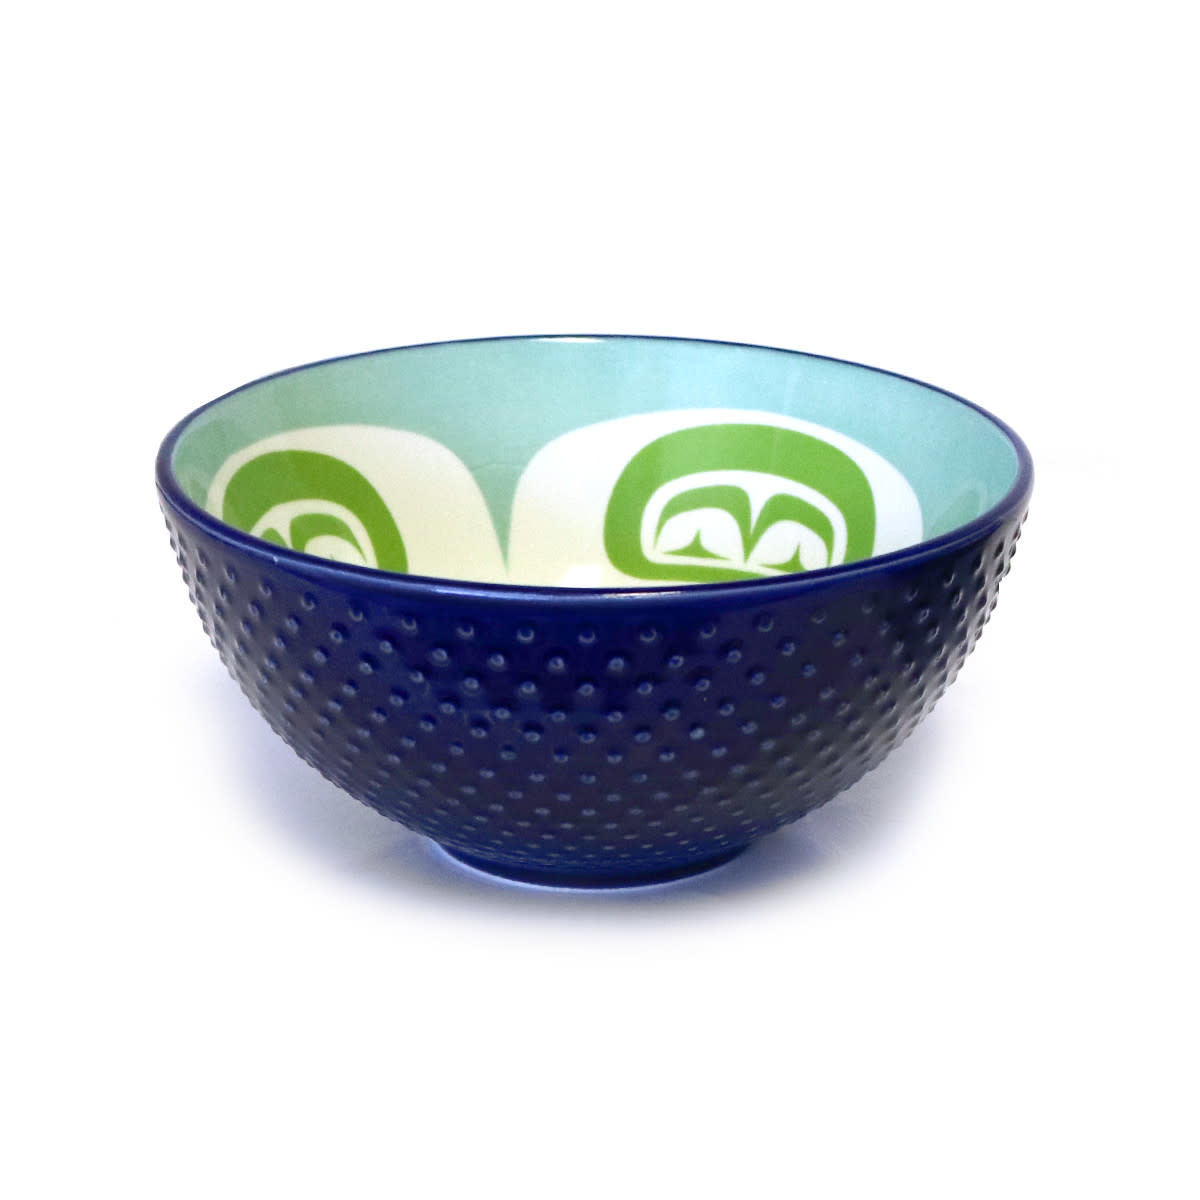 Porcelain Art Bowl - Medium-3